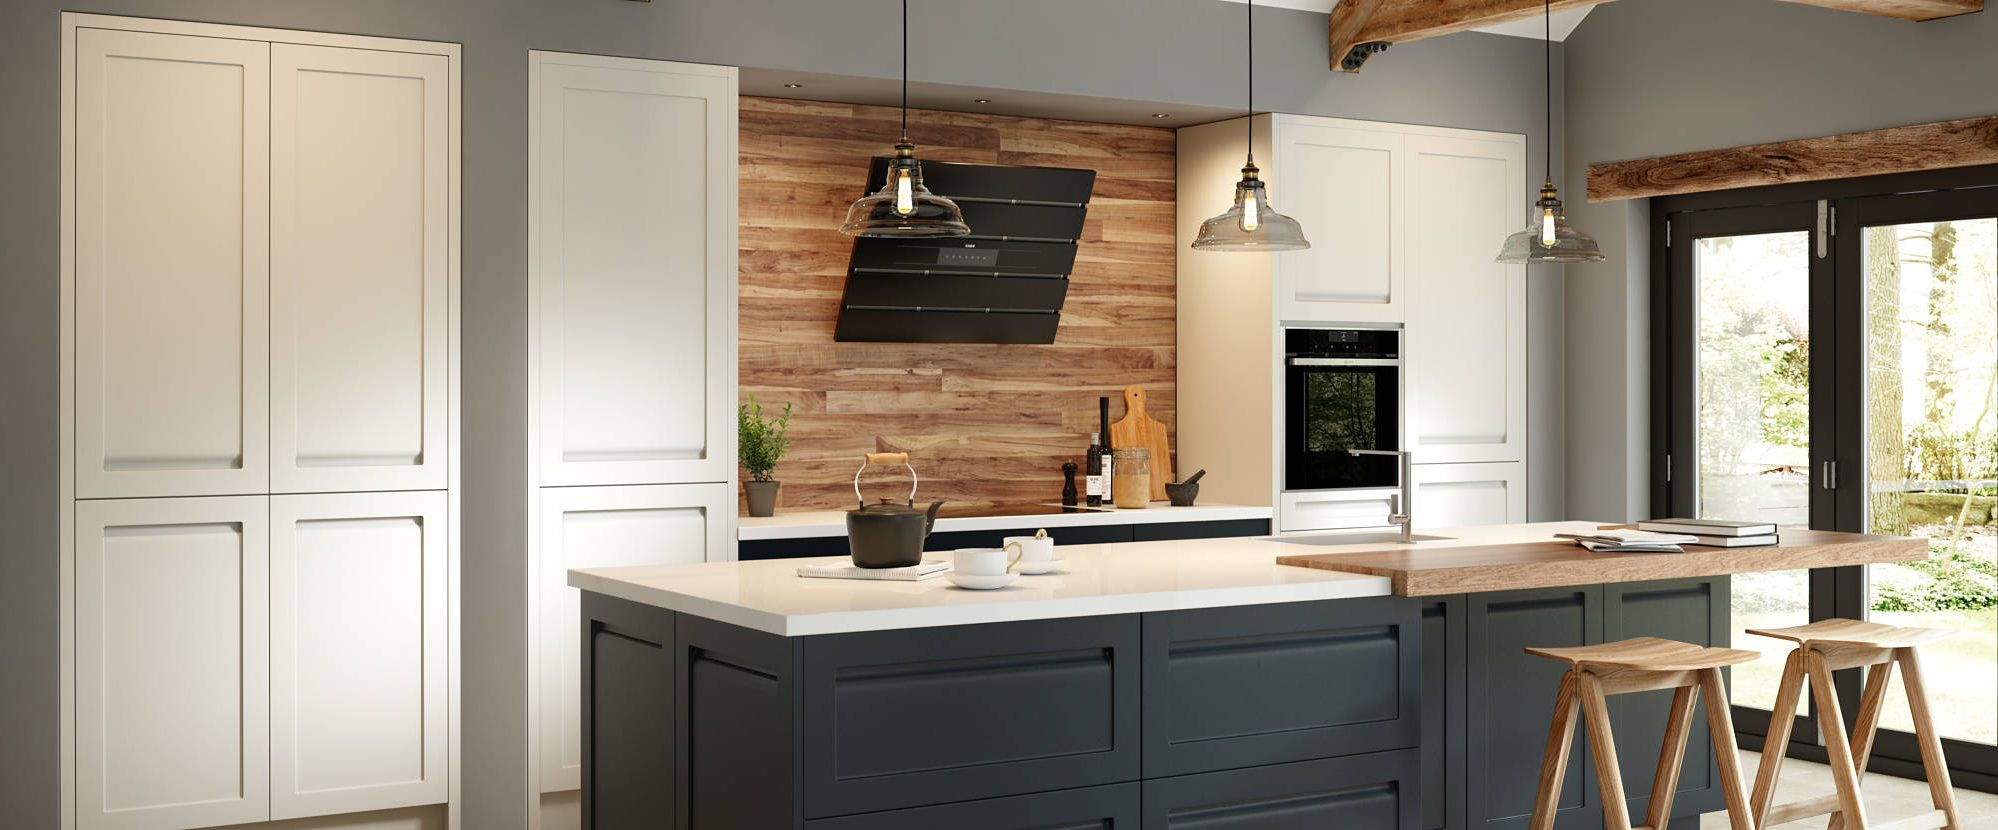 Savoy Painted Limestone and Anthracite Classic Style Kitchen